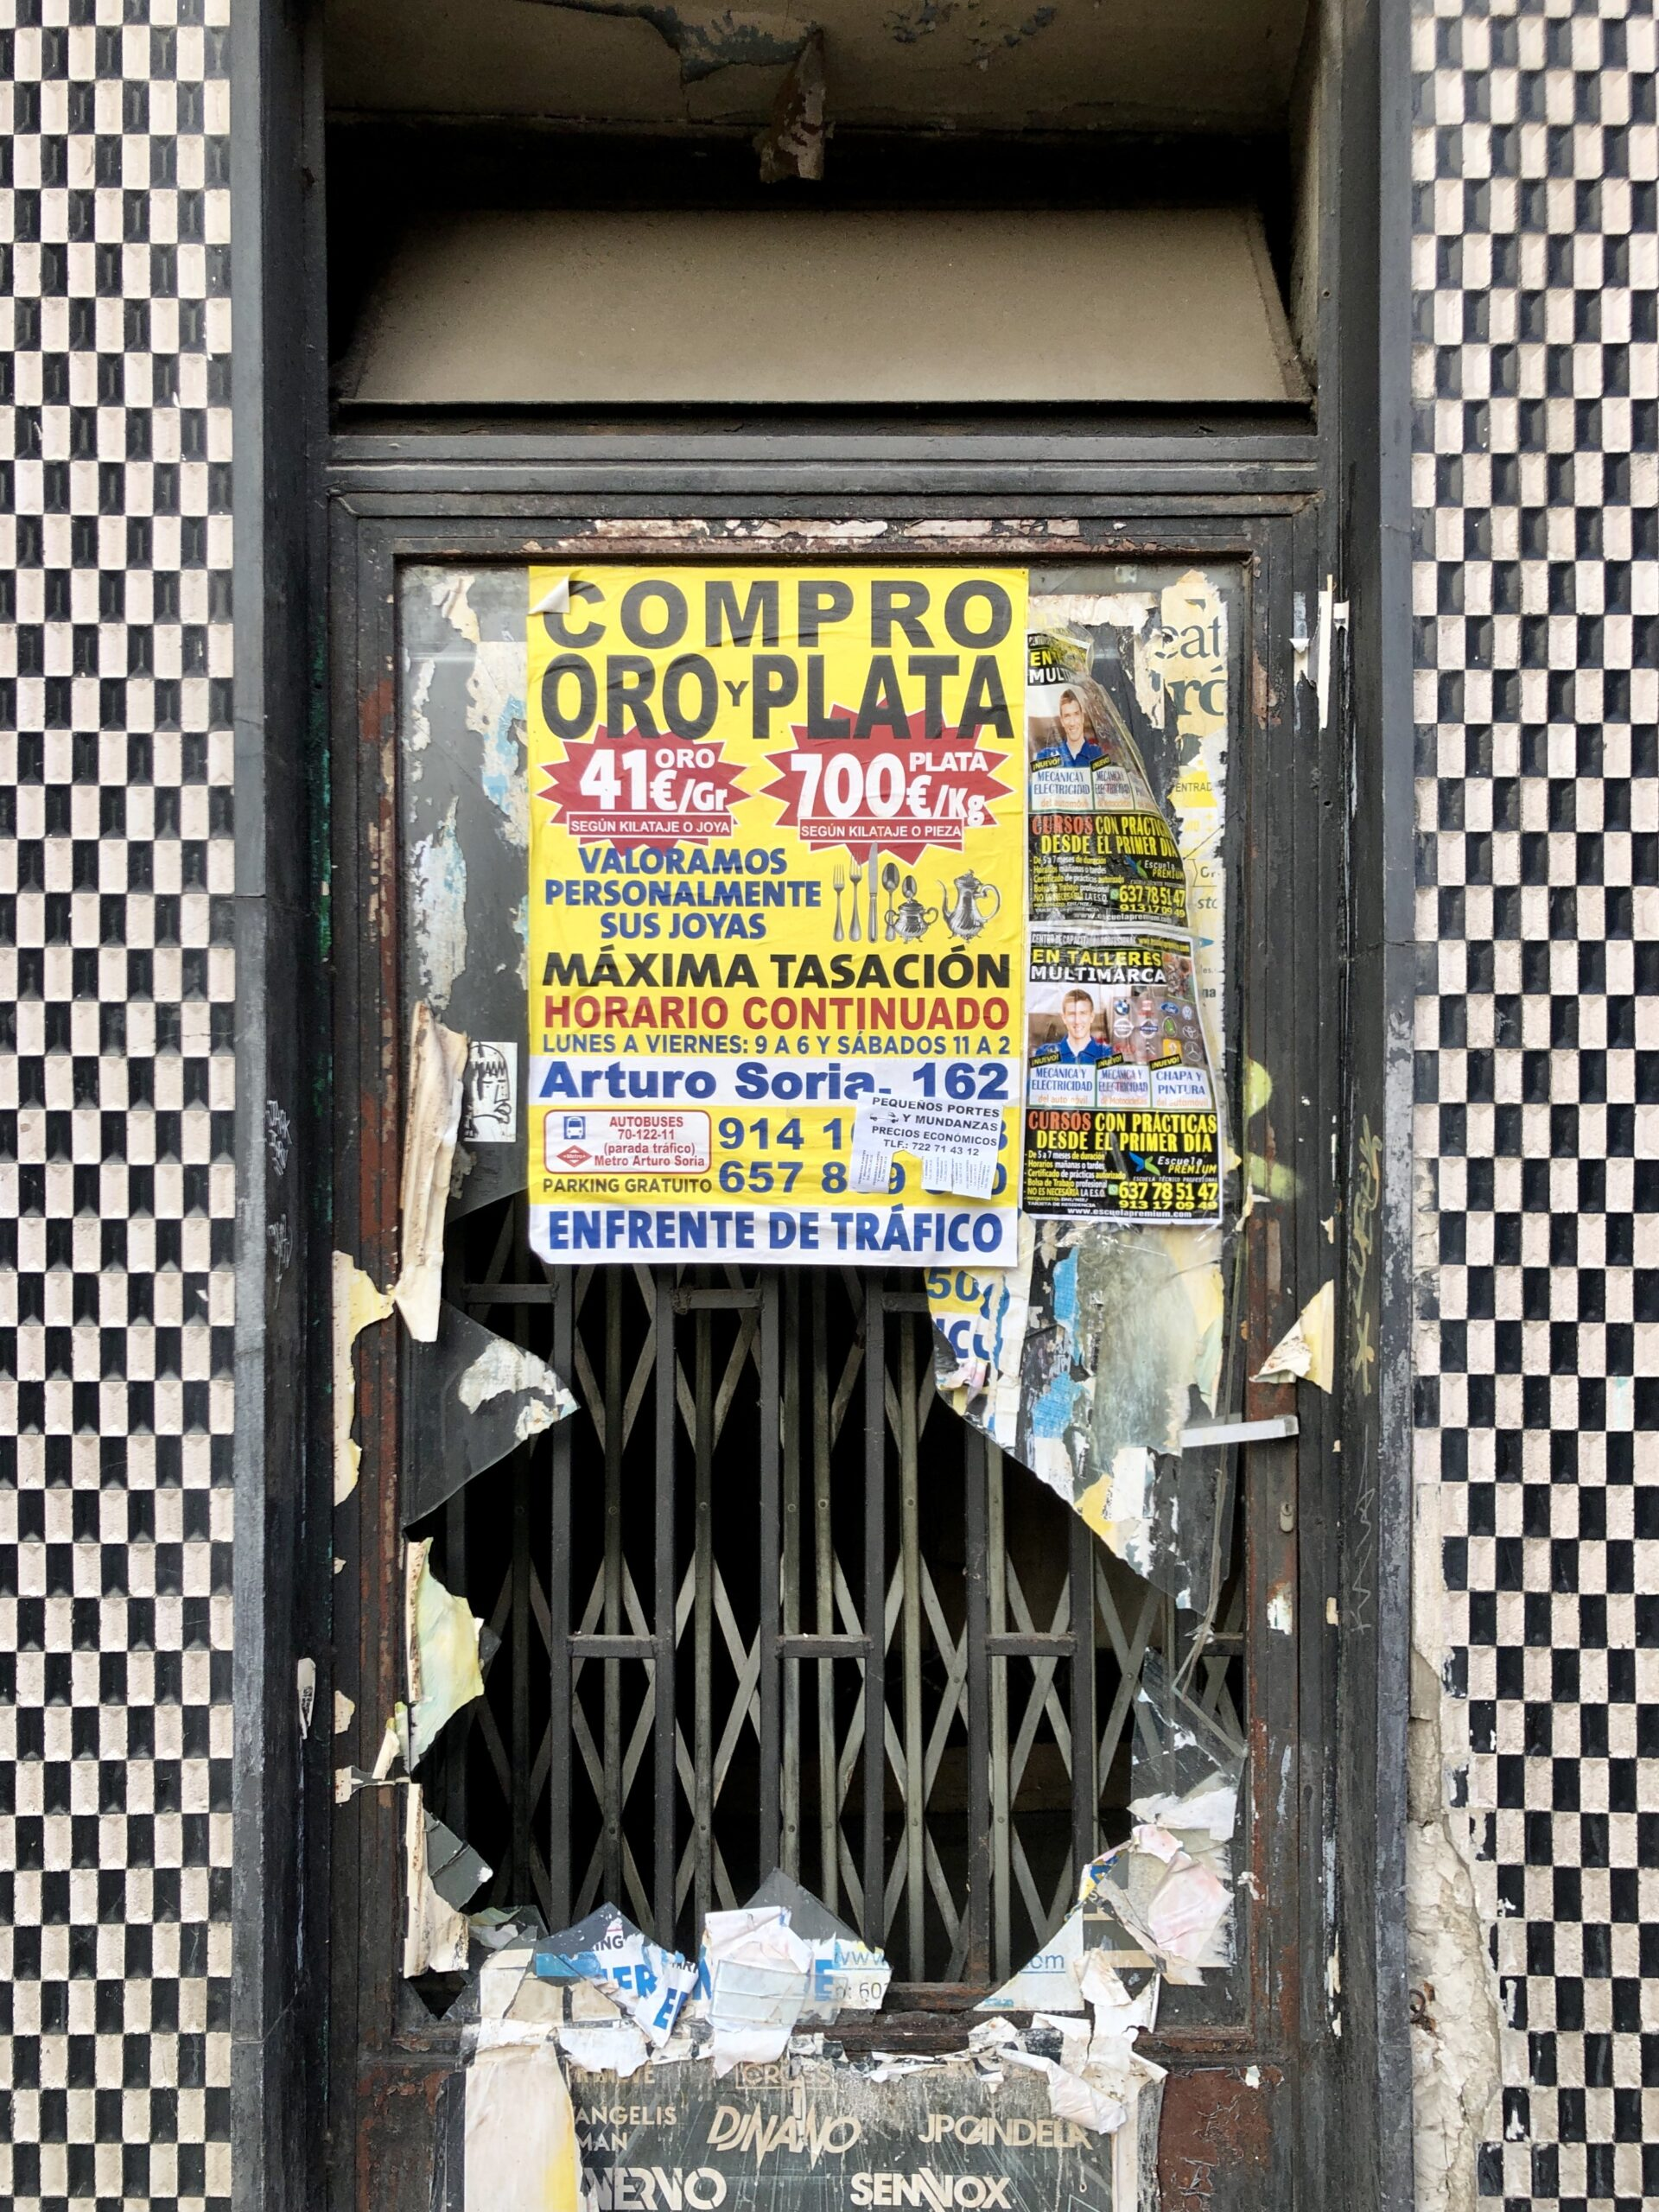 A door surrounded by a checkerboard design with broken glass and covered in posters.